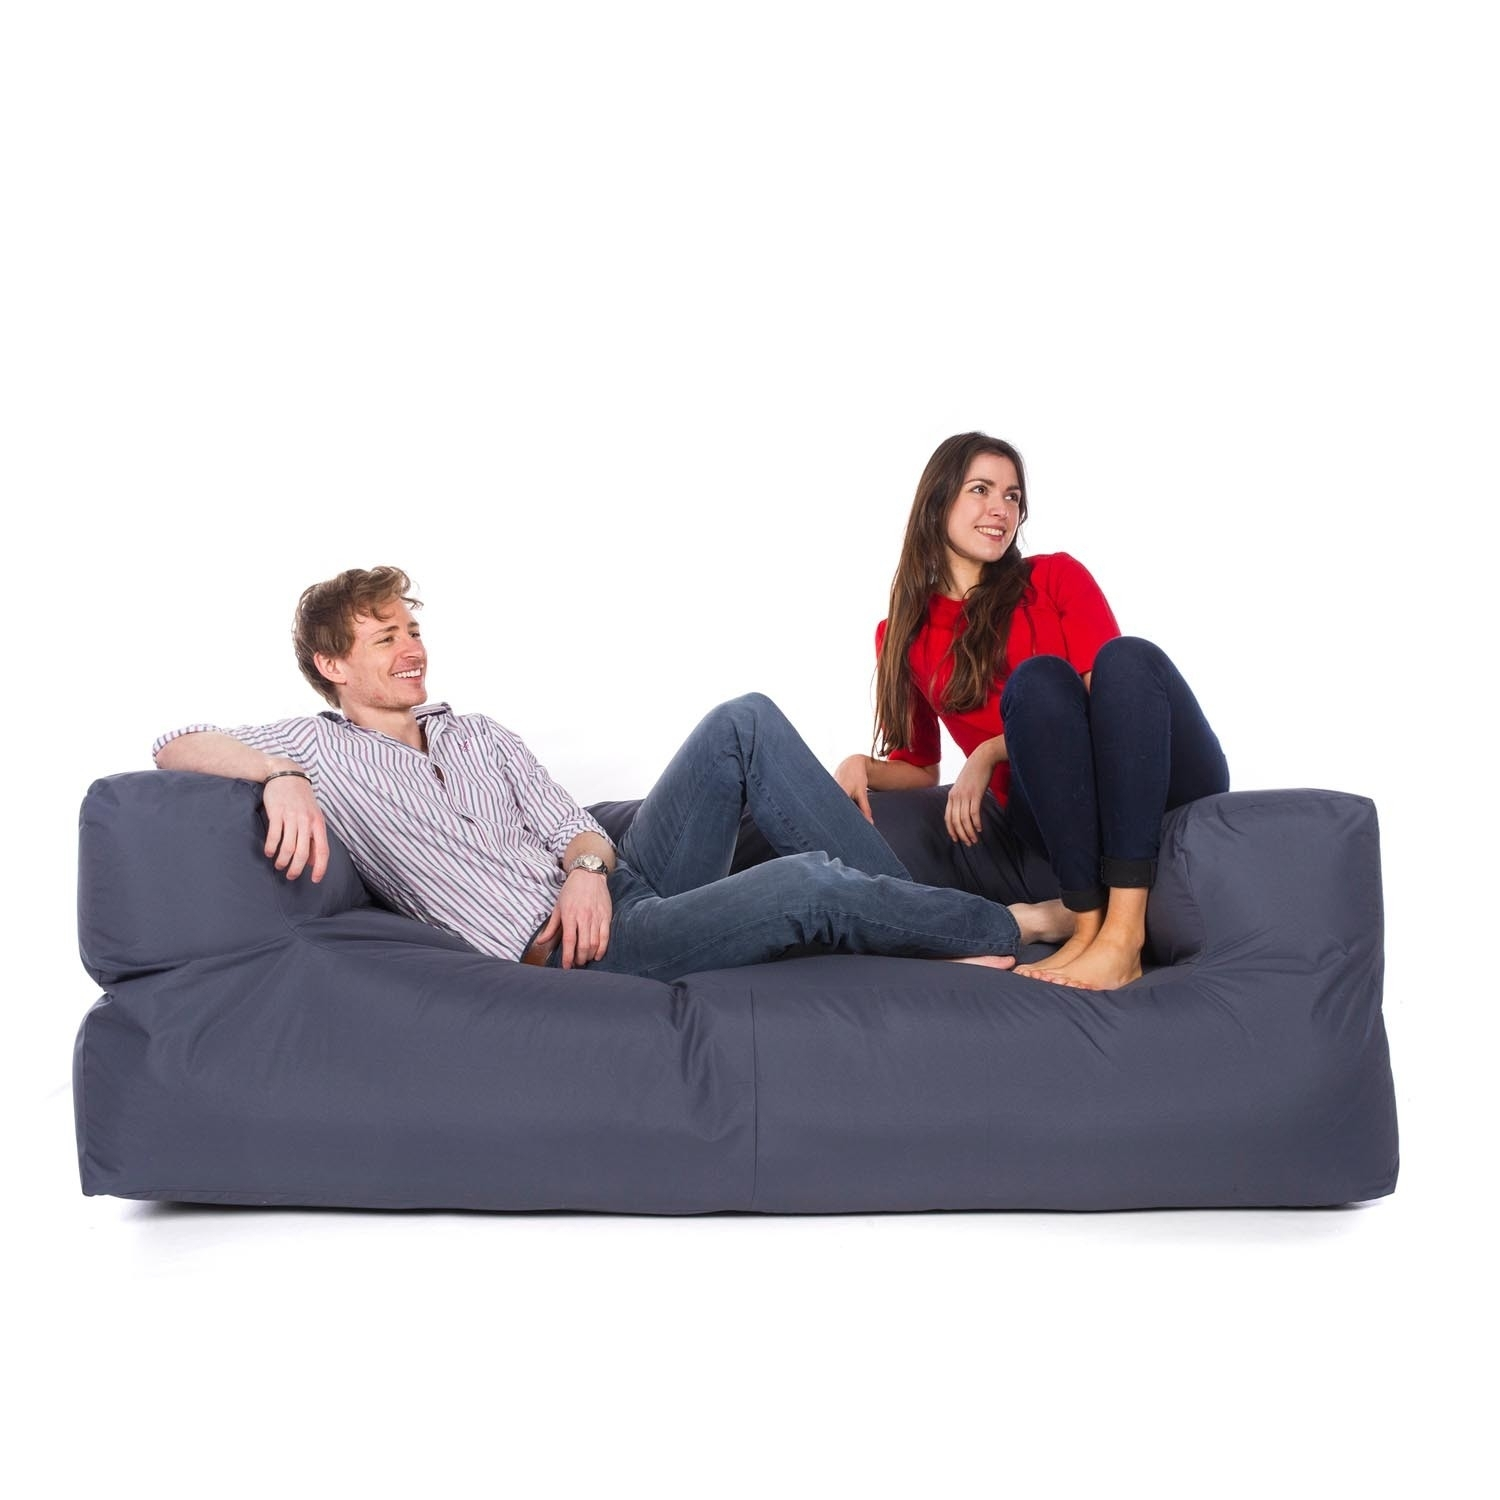 Indoor/outdoor Couch Bean Bag Intended For Bean Bag Sofas (Image 7 of 10)